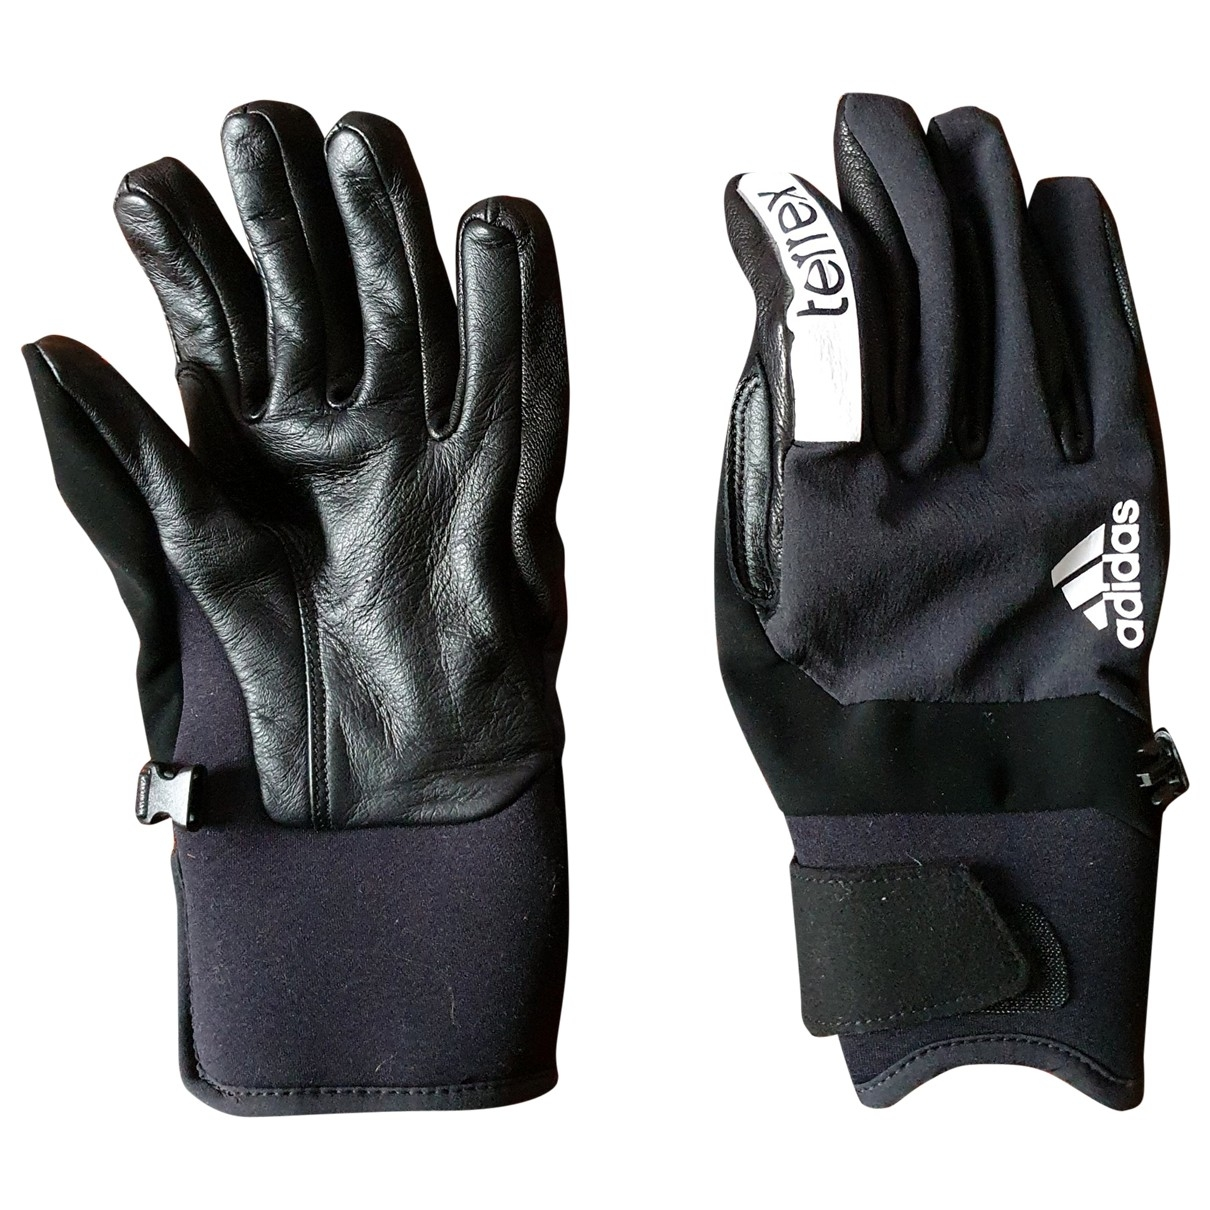 Adidas \N Black Leather Gloves for Men M International